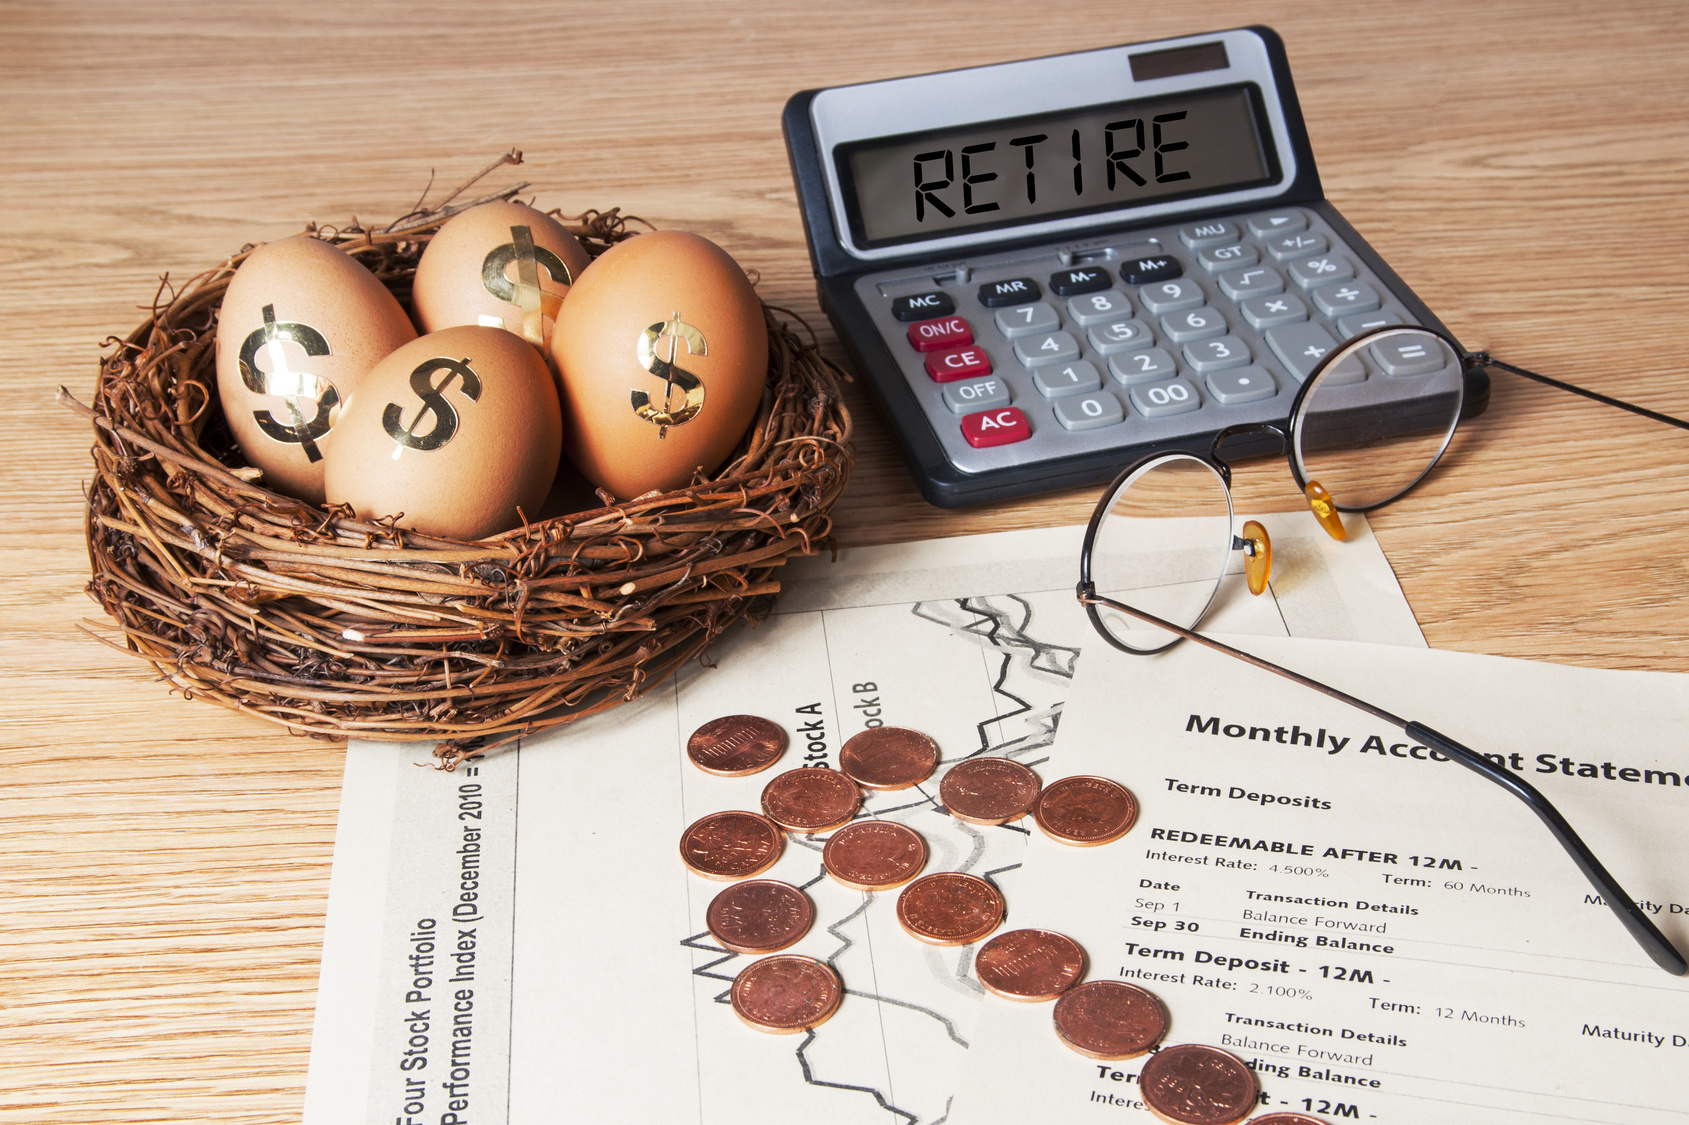 Plan ahead now, and you can see significant increases in your benefits